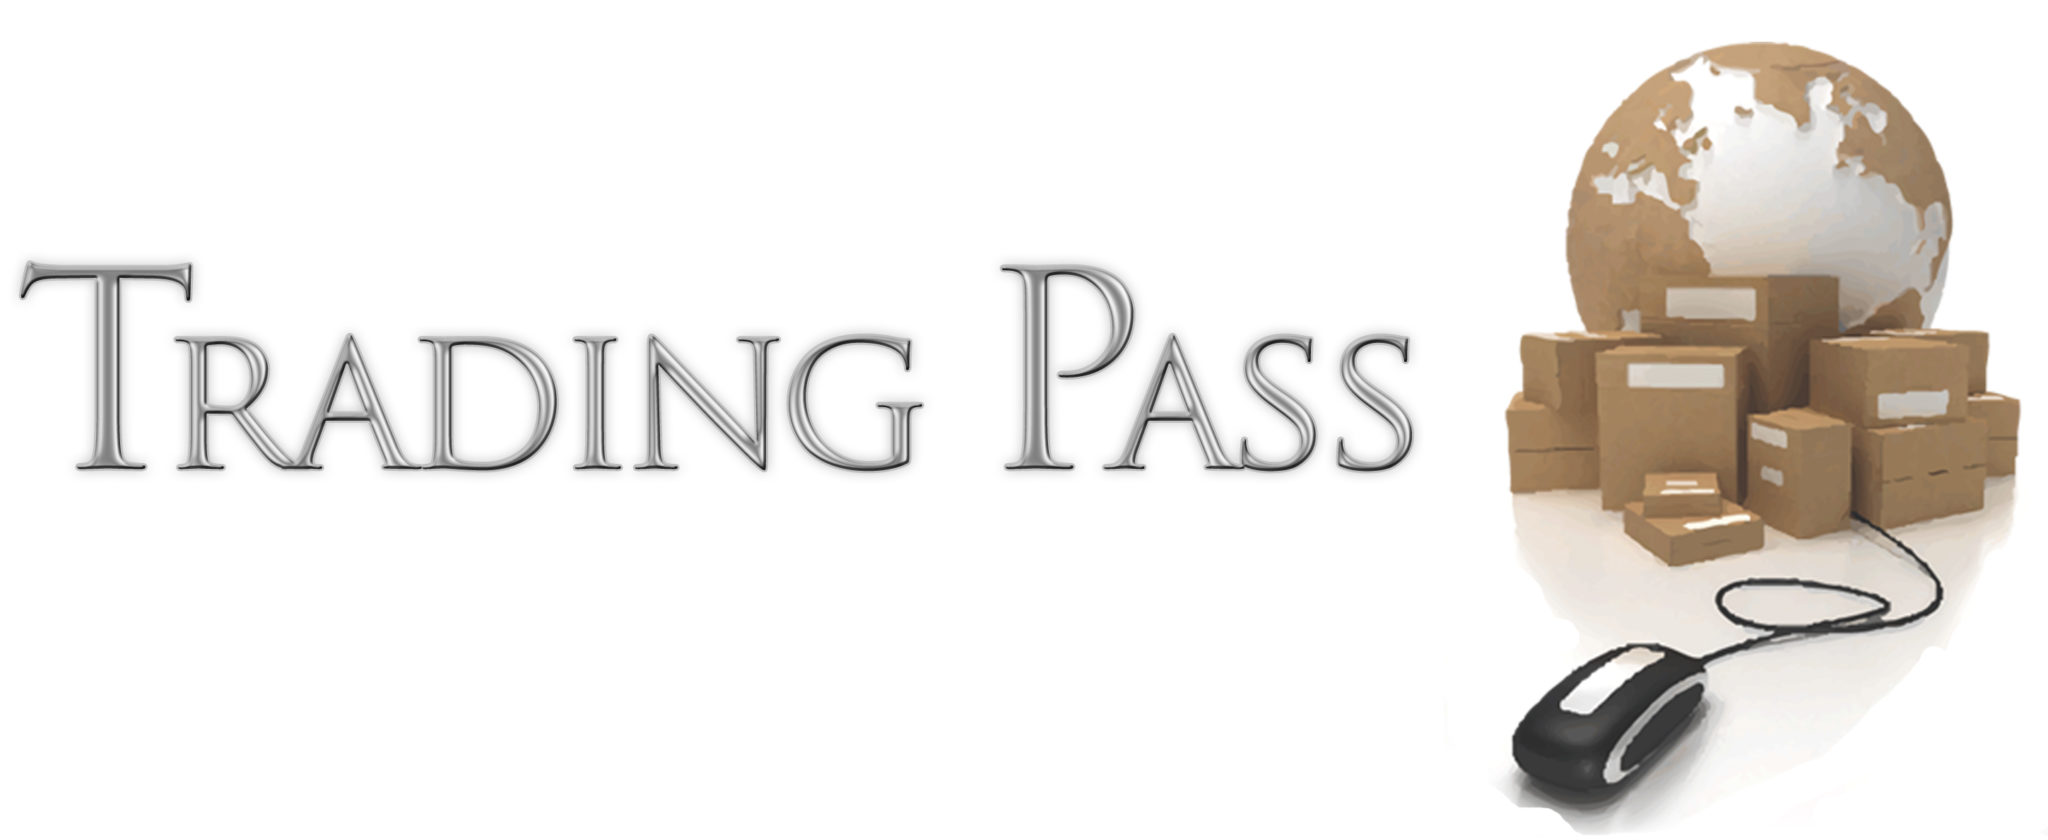 Trading Pass